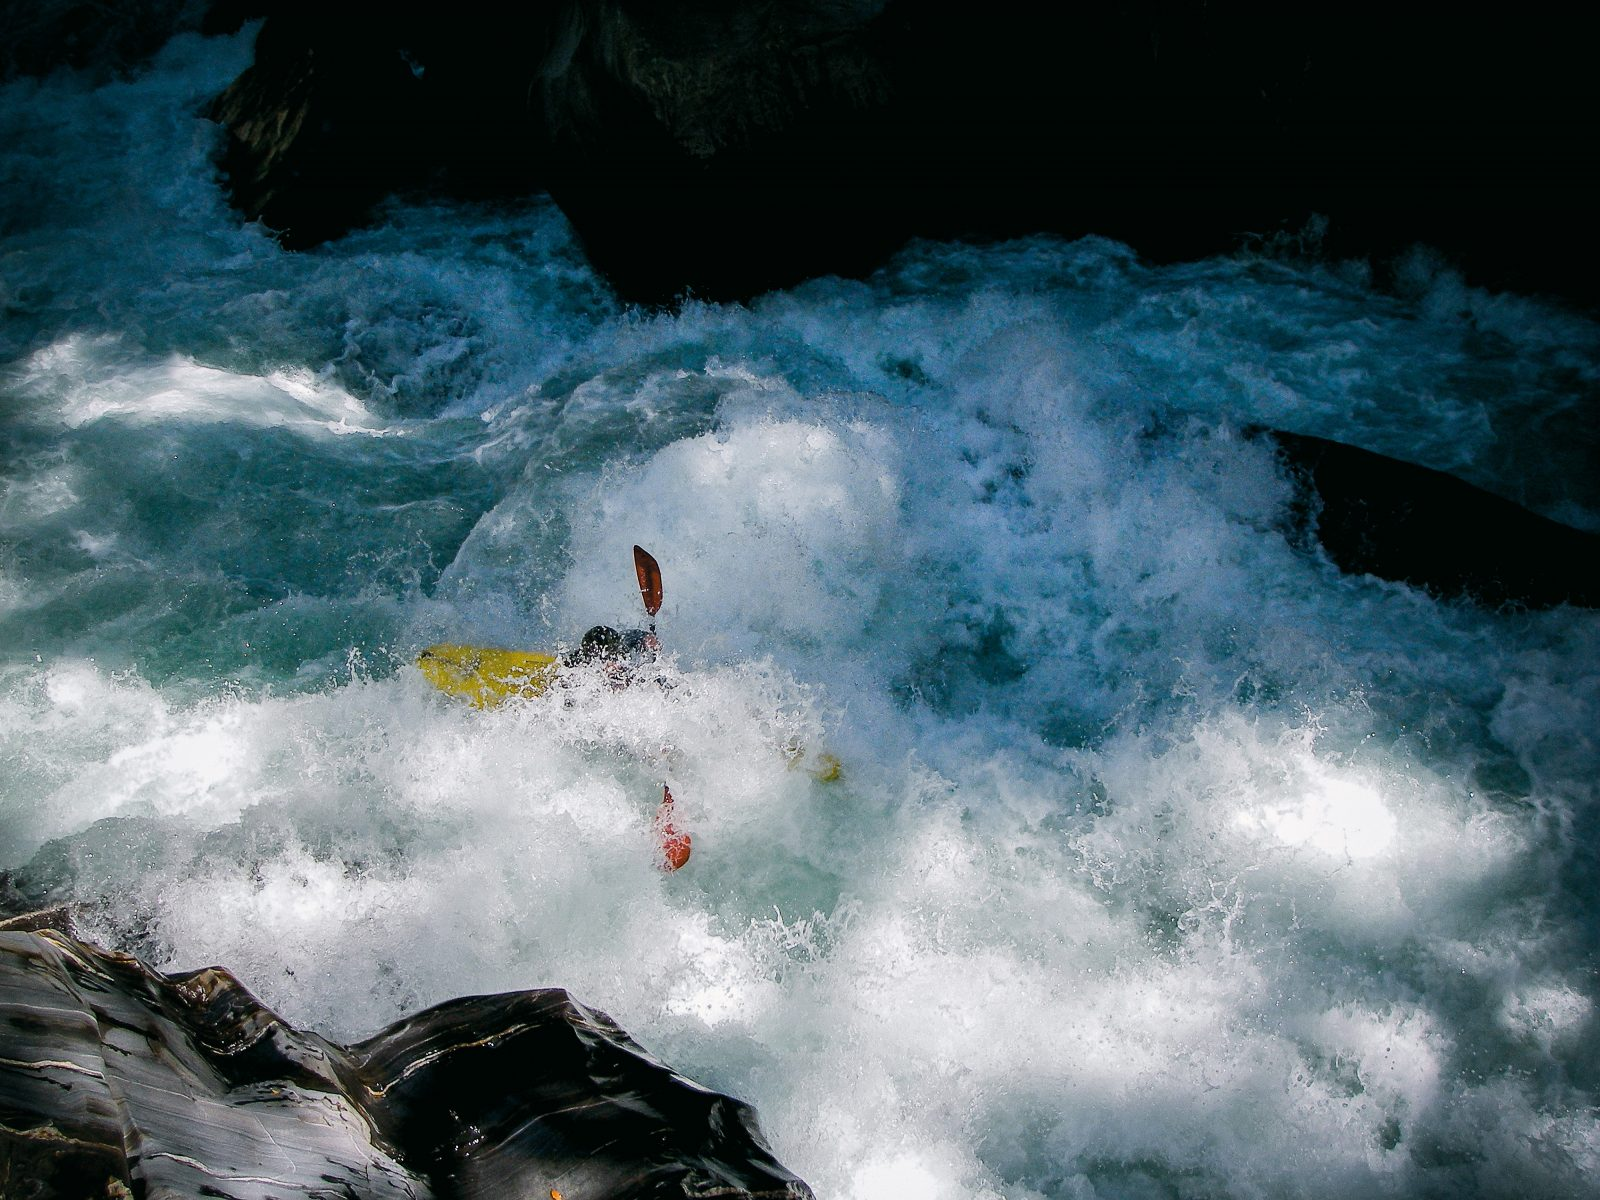 "Hidden in a froth of whitewater, Jason Shepherd takes on a rapid in the lower section of Morgan Gorge in 2008. Although parts of the gorge had been paddled since 2002, it was not until 2010 that a successful full descent was achieved. The gorge's swift flow and obstacle course of rock bluffs make the run one of the hardest in the country, navigible only by experts. Whitewater New Zealand, which represents the country's freshwater kayakers and opposes the hydro scheme, claims, ""There is no other resource offering the same mix and level of extremely challenging white water that can substitute for the Waitaha River."""